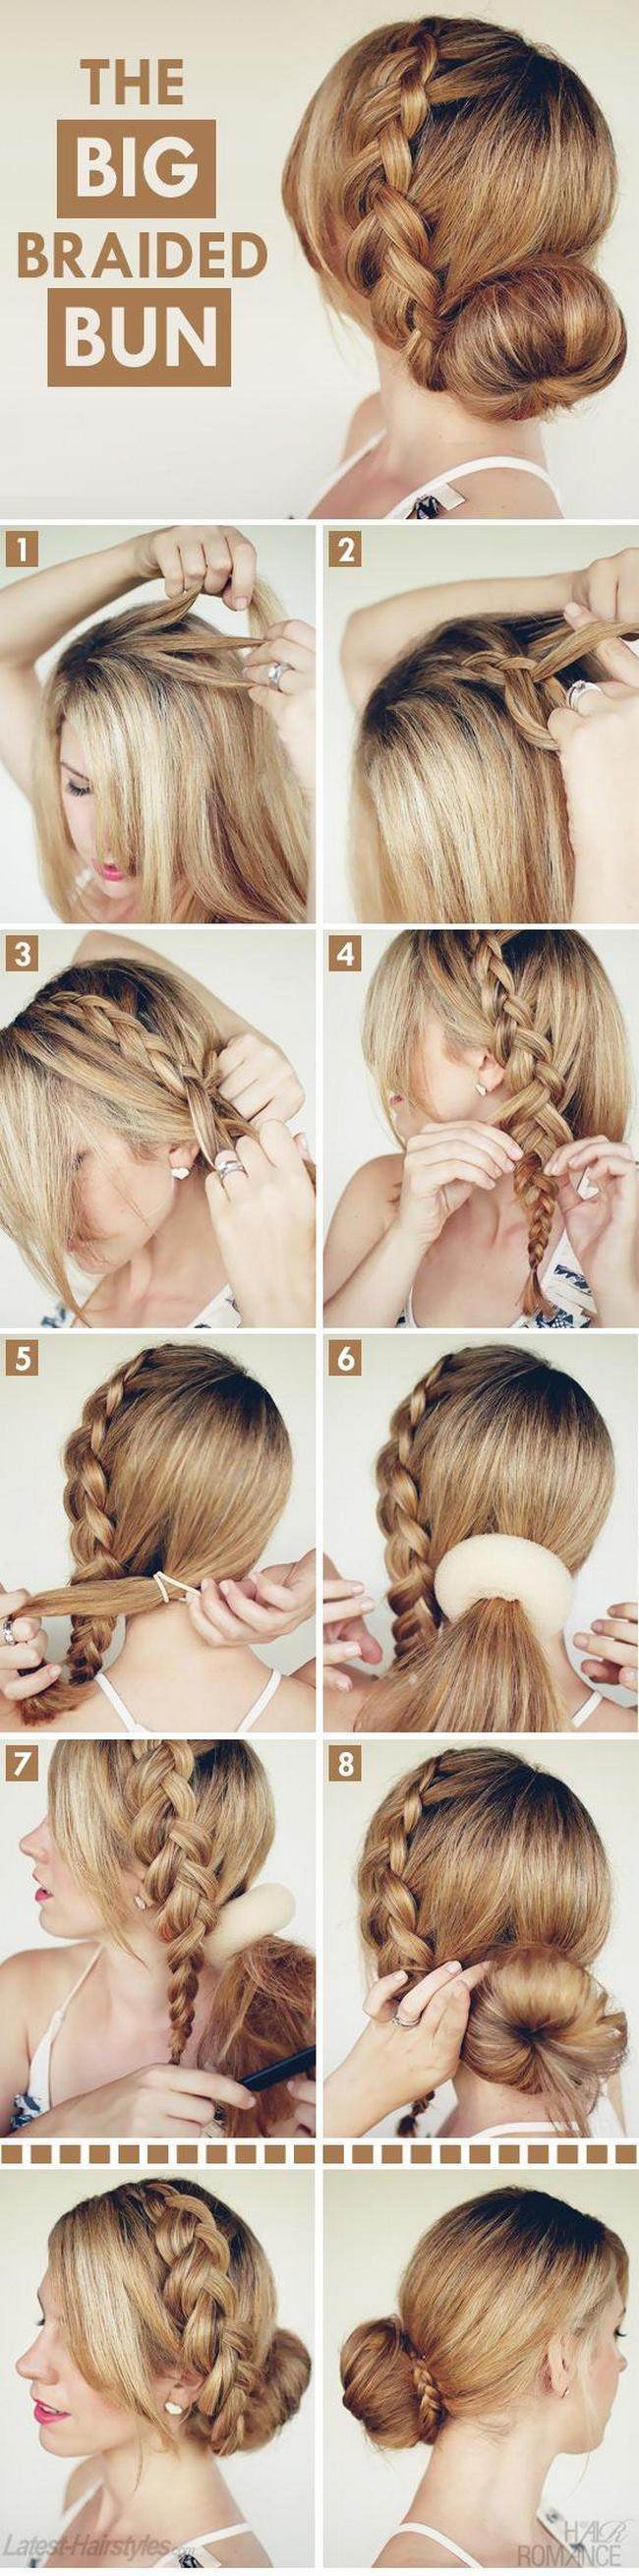 big-braided-bun-w650